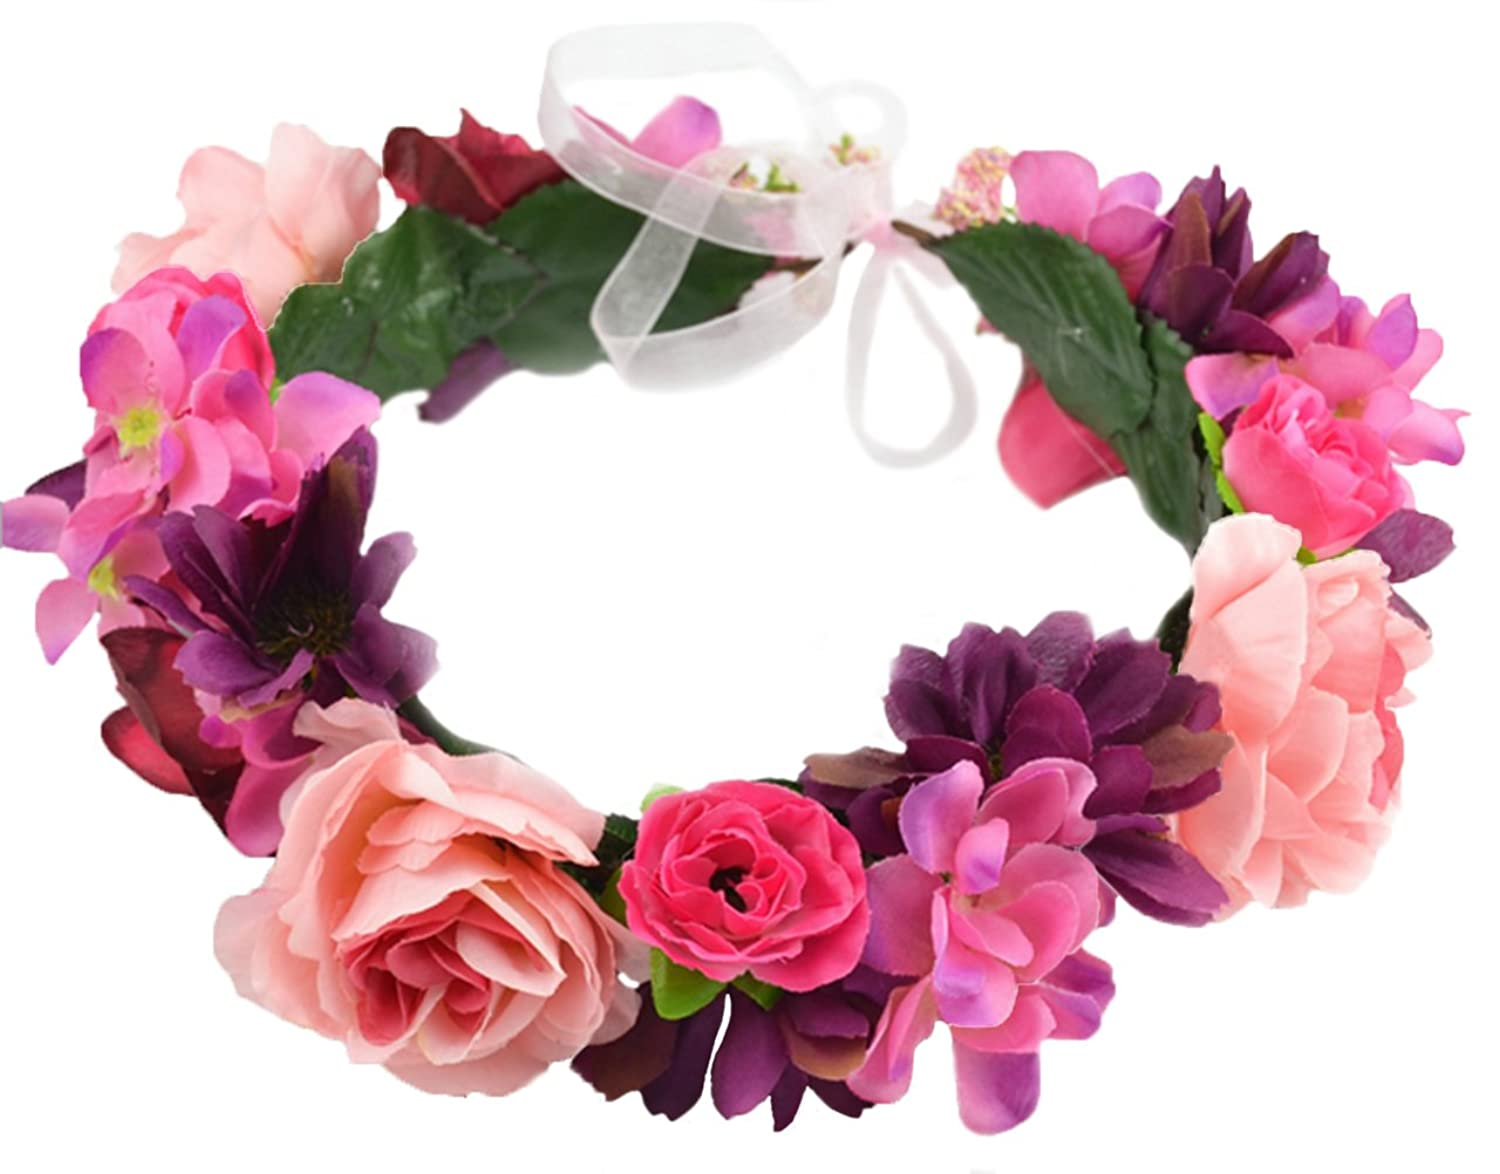 Vivivalue Flower Wreath Headband Crown Floral Garland with Ribbon for Wedding